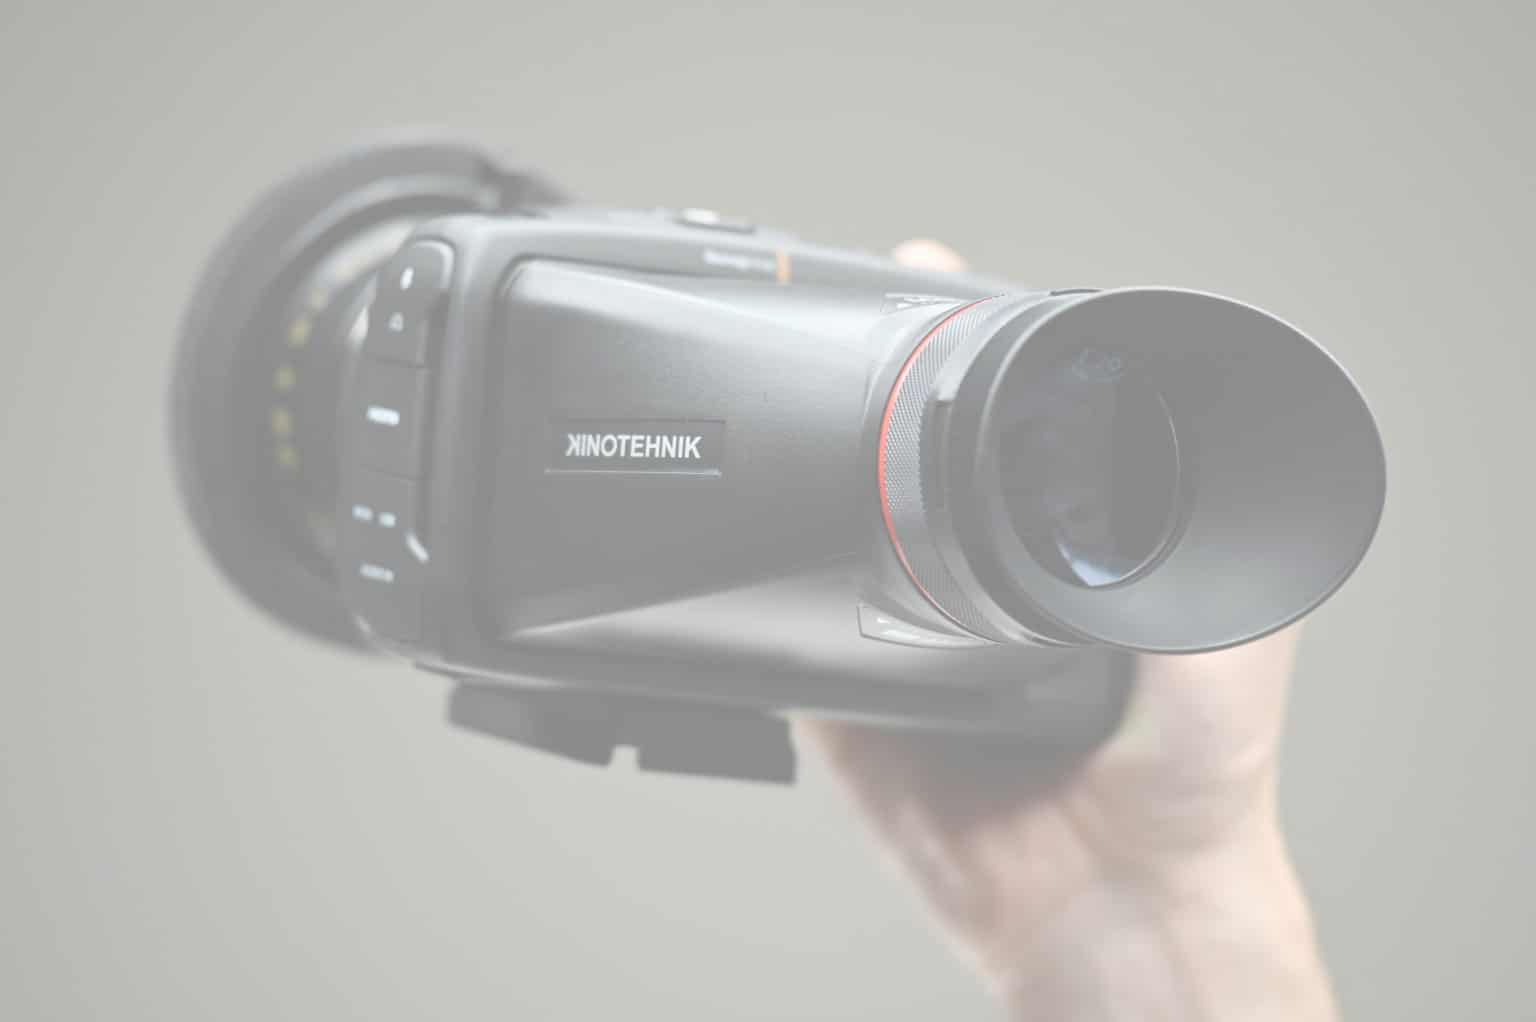 LCDVFBM5 LCDVF Viewfinder BlackMagic 4K and 6K sun hood screen video BMPCC 4K 6K review